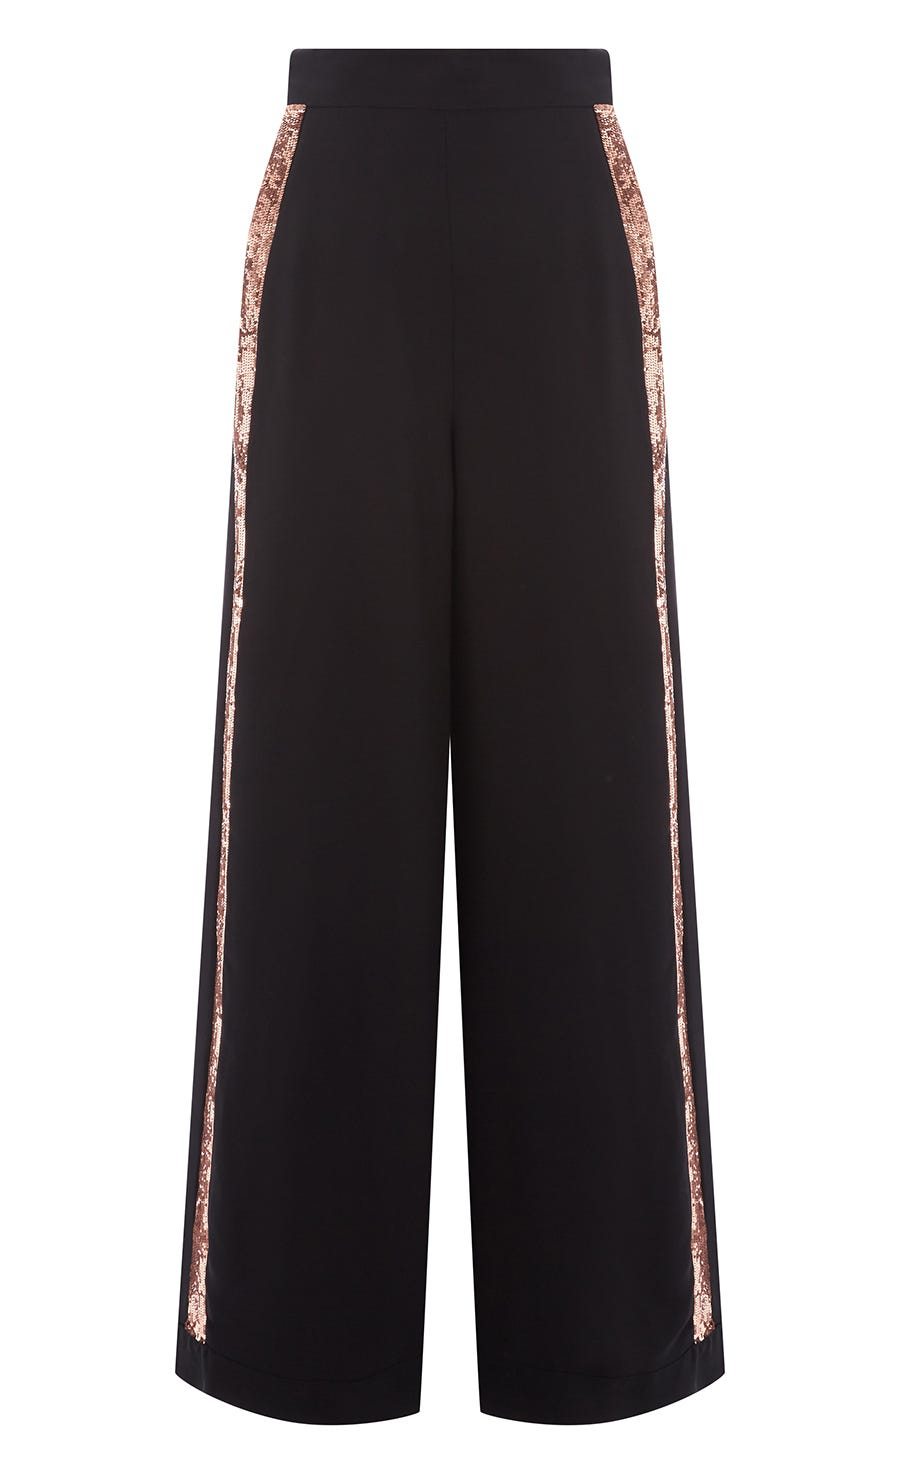 Sycamore Trousers